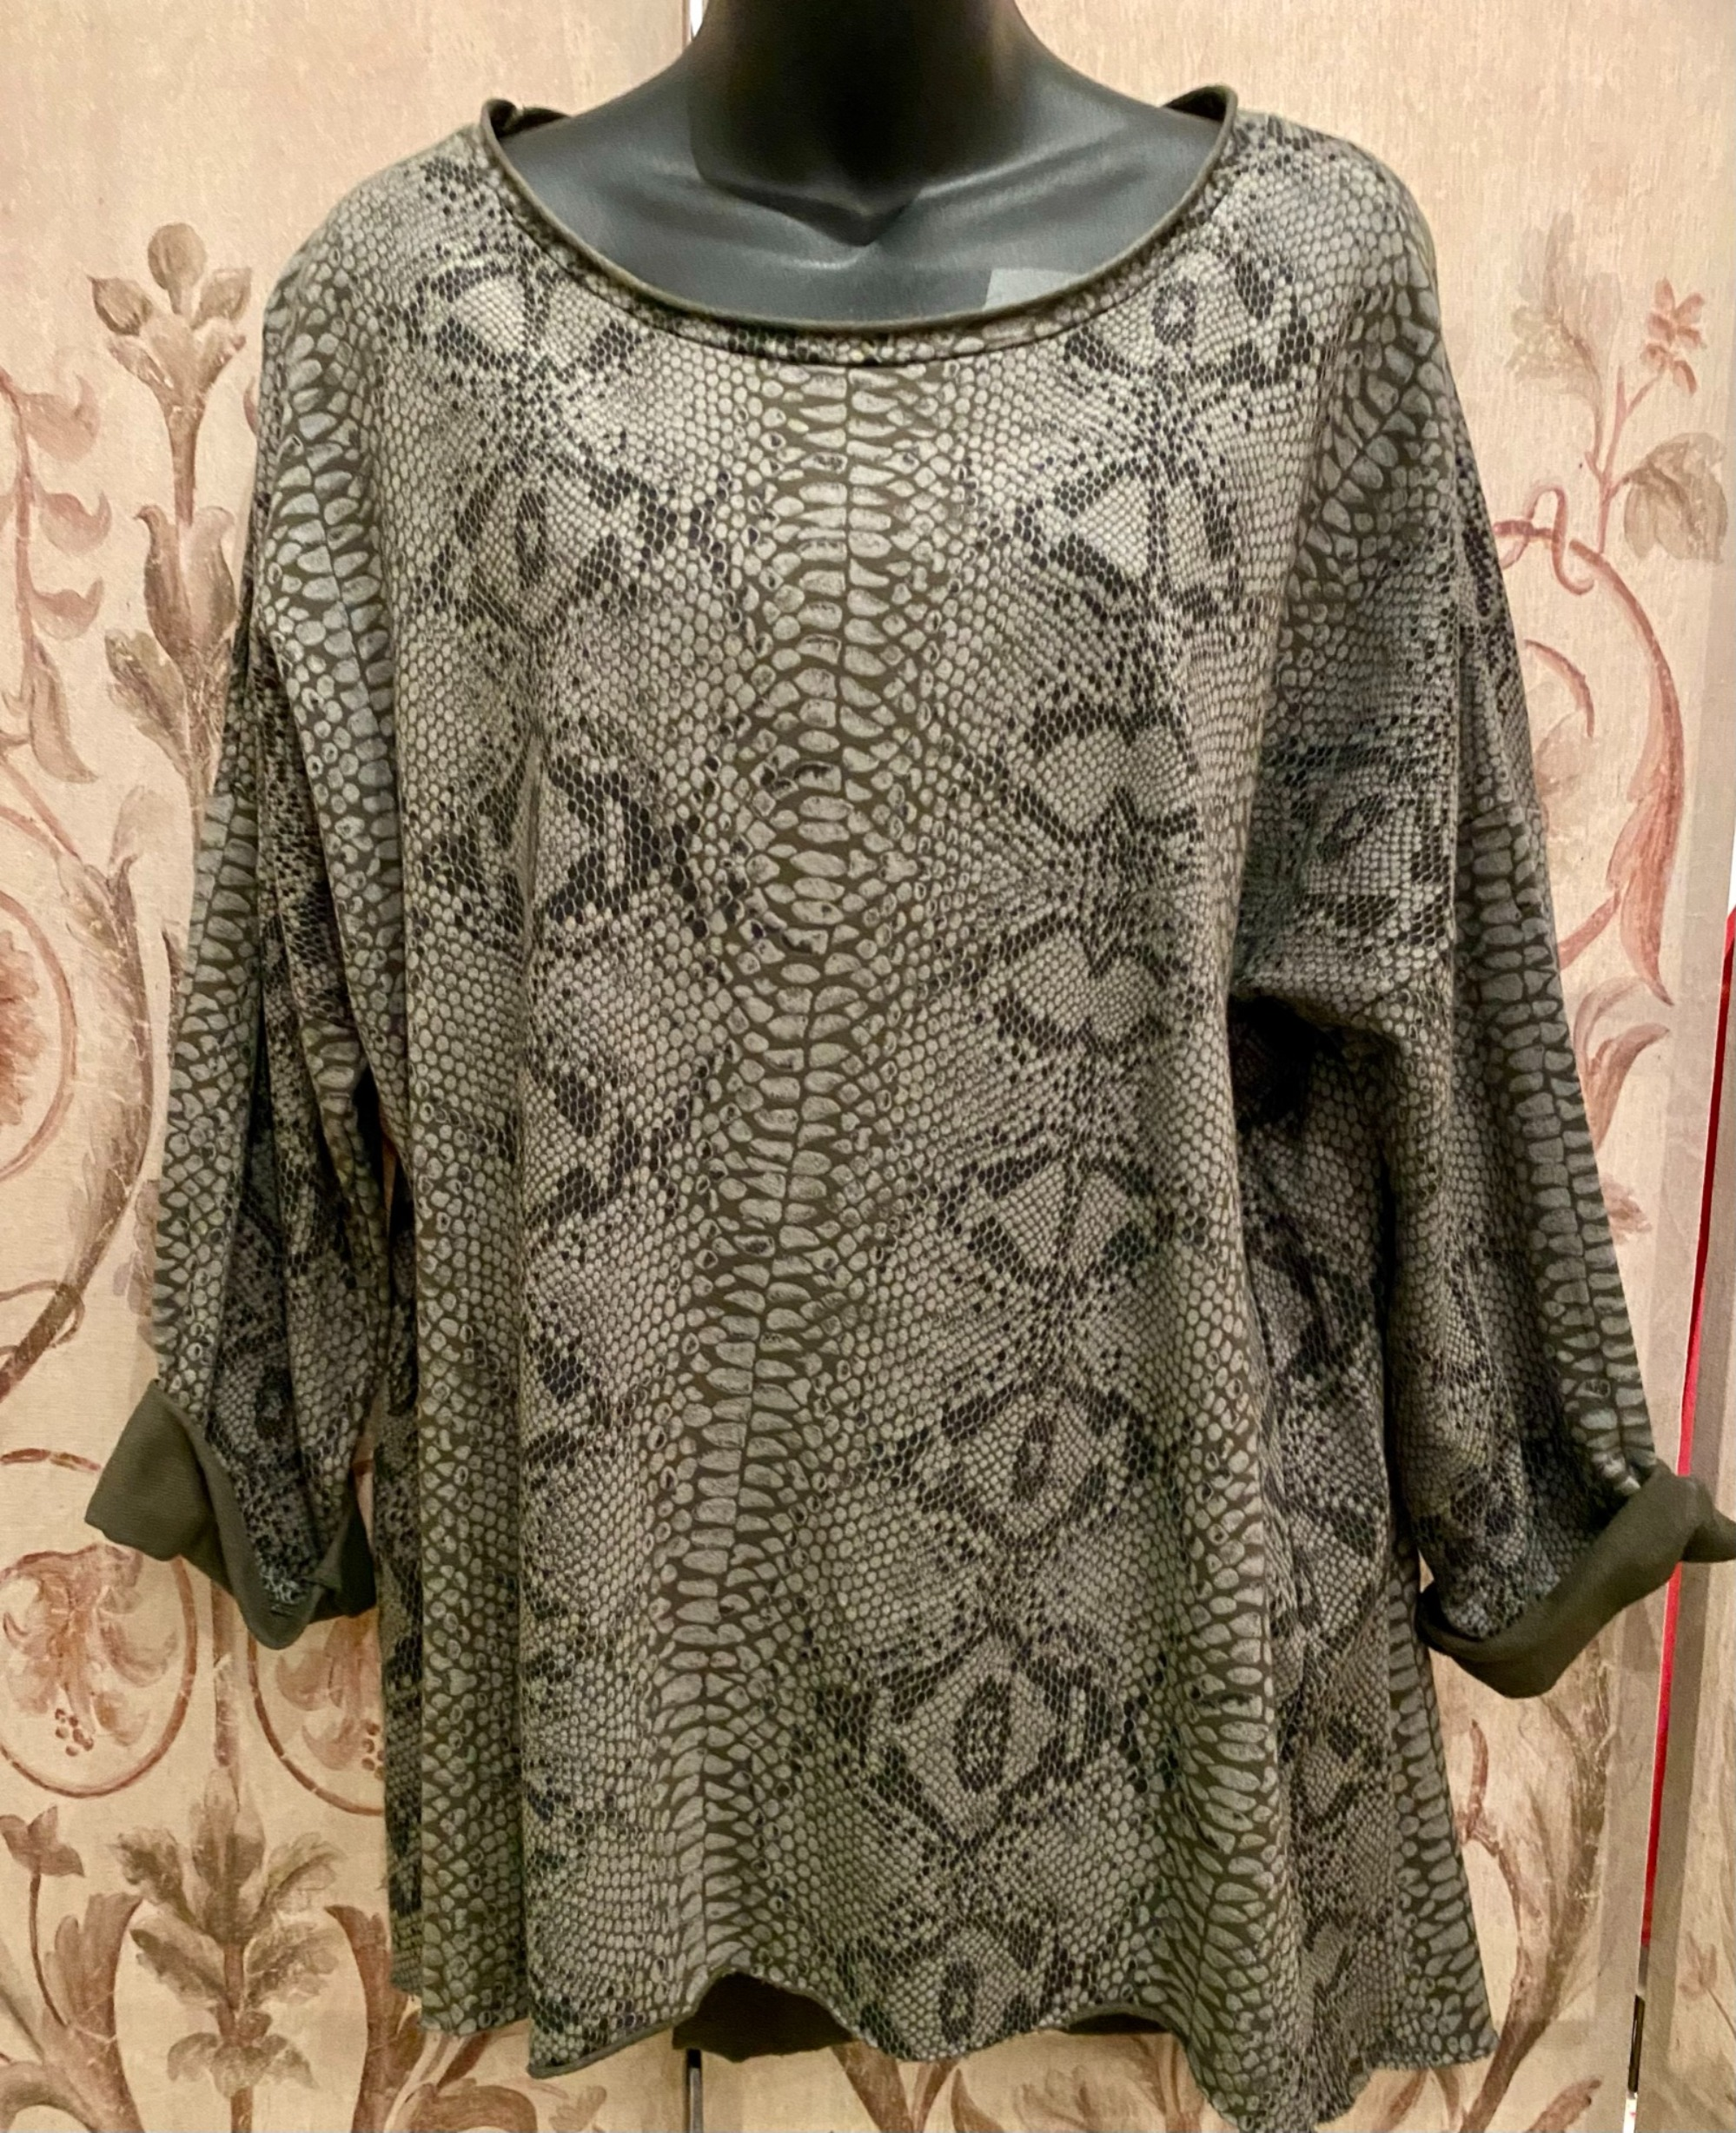 Long sleeved cotton jersey snake print top